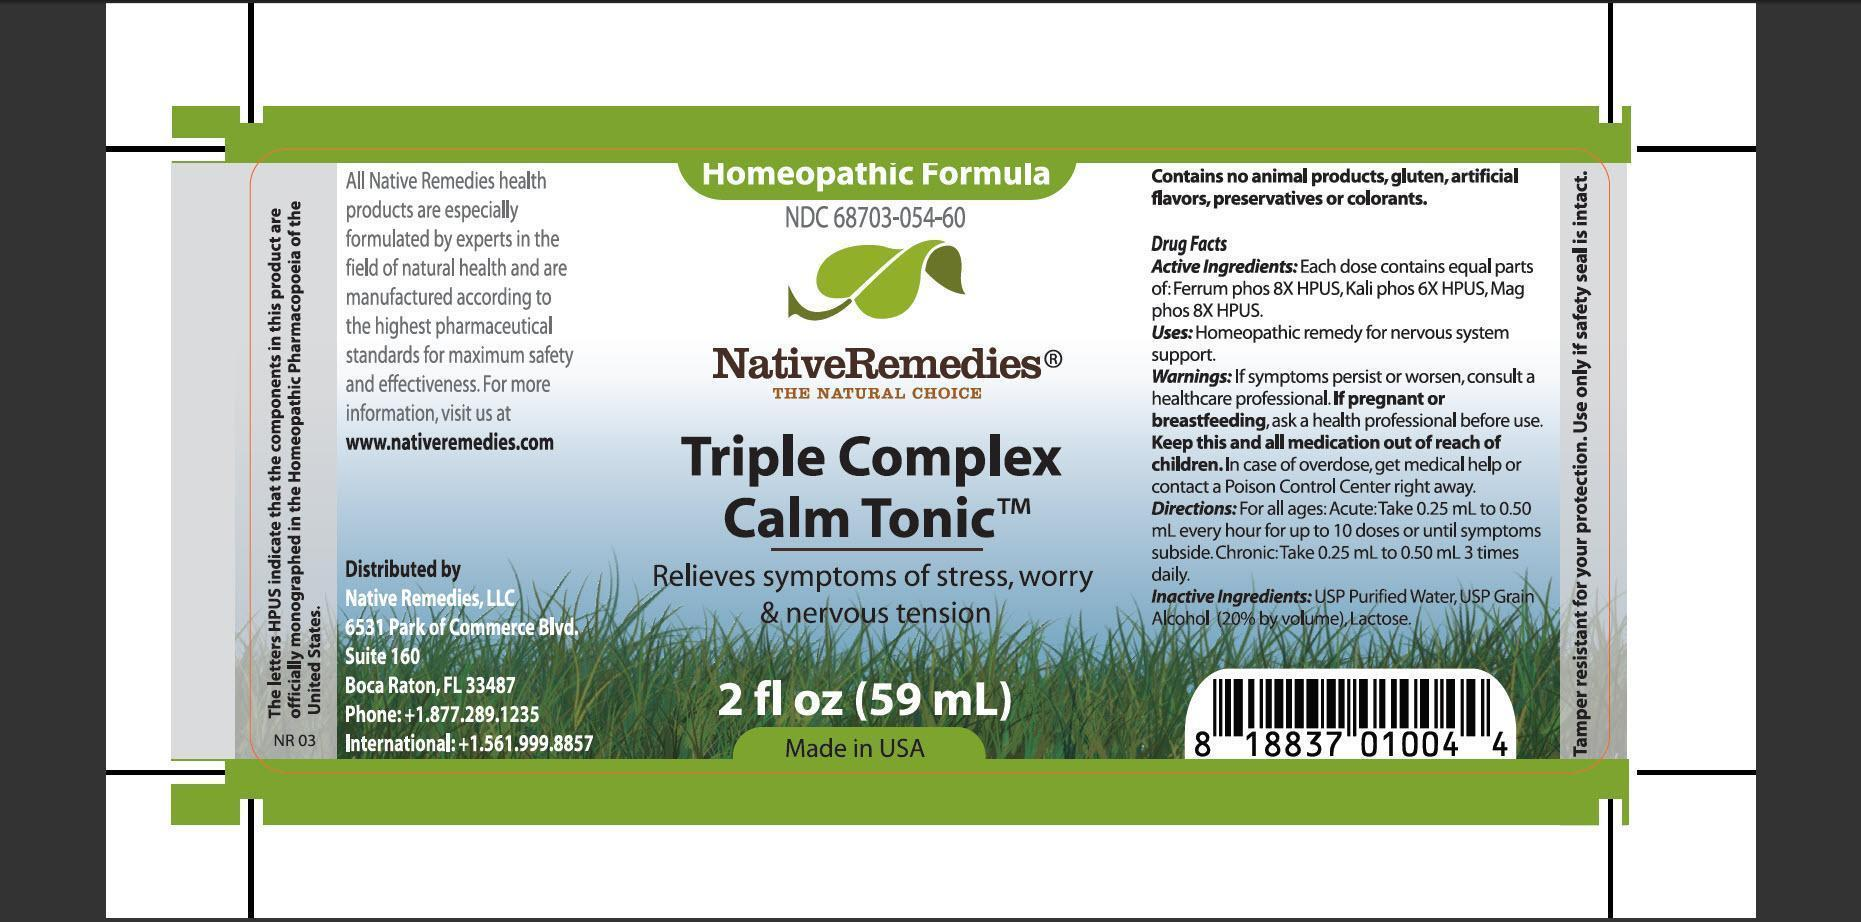 Triple Complex Calm Tonic (Ferrum Phos, Kali Phos, Mag Phos) Tincture [Native Remedies, Llc]